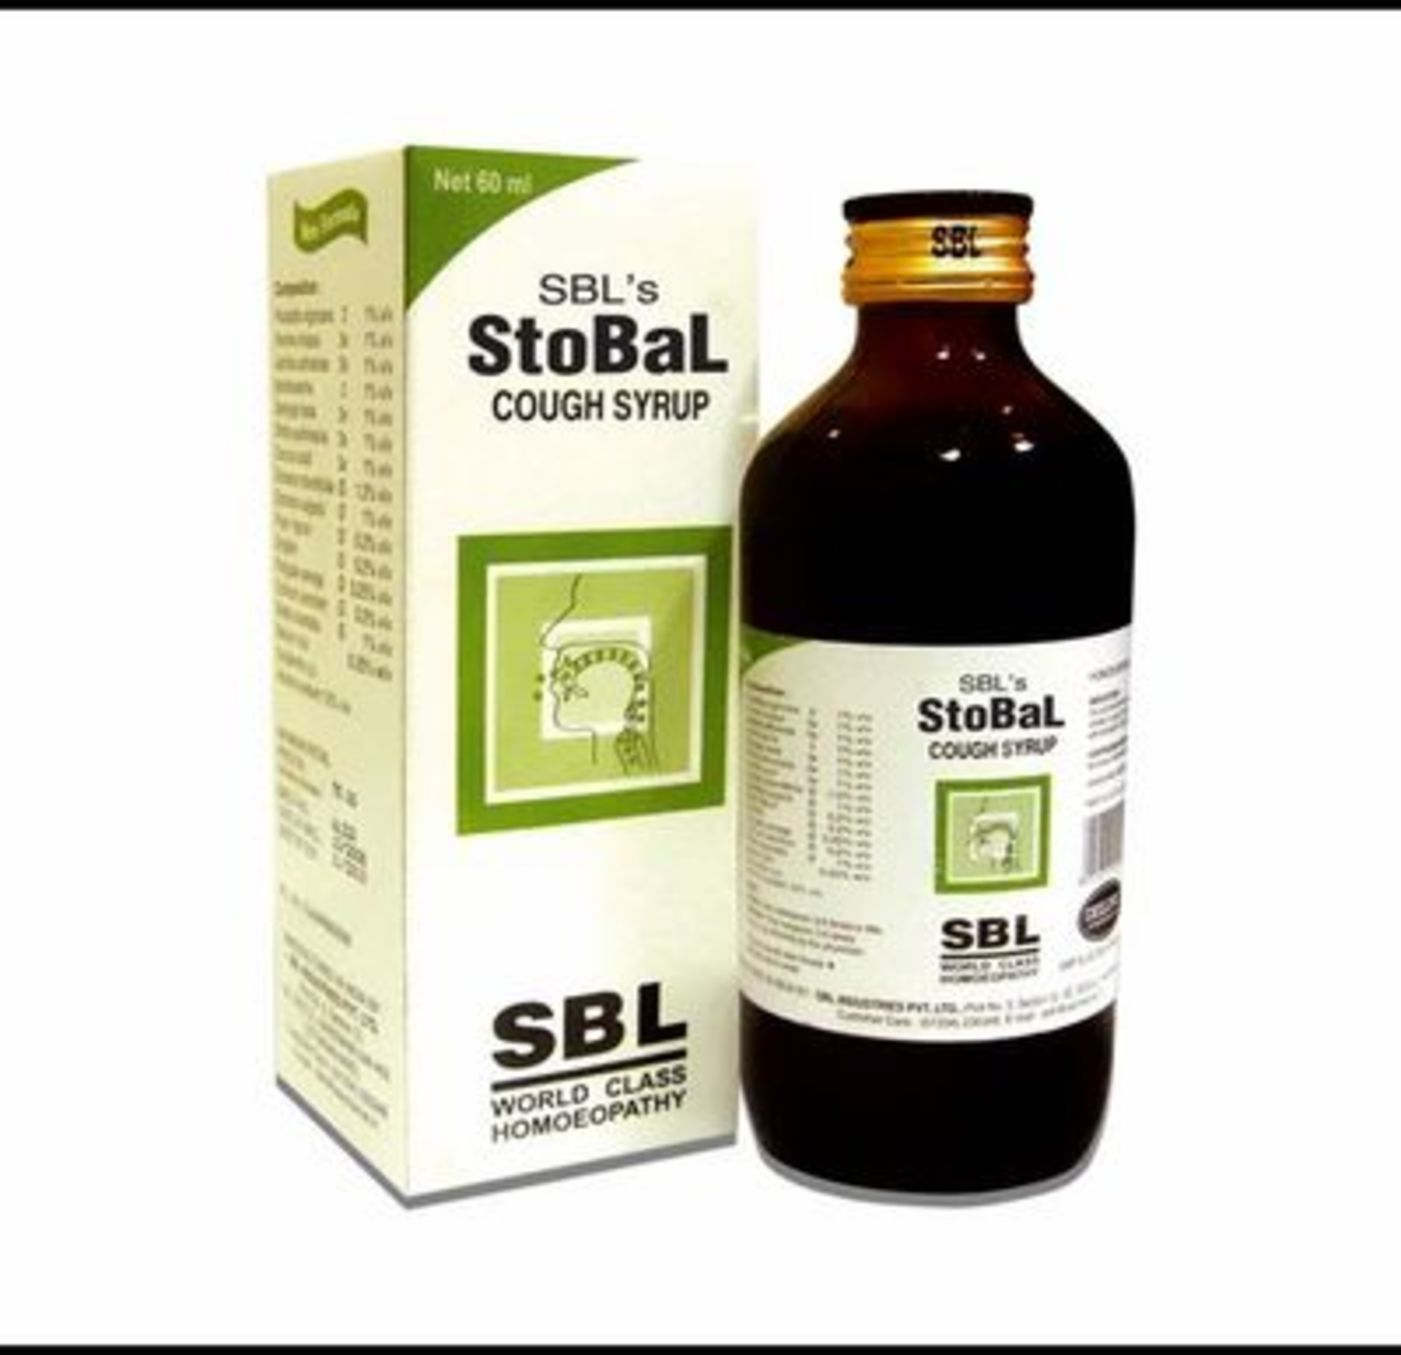 SBL Stobal Cough Syrup Homeopathic Medicine style=